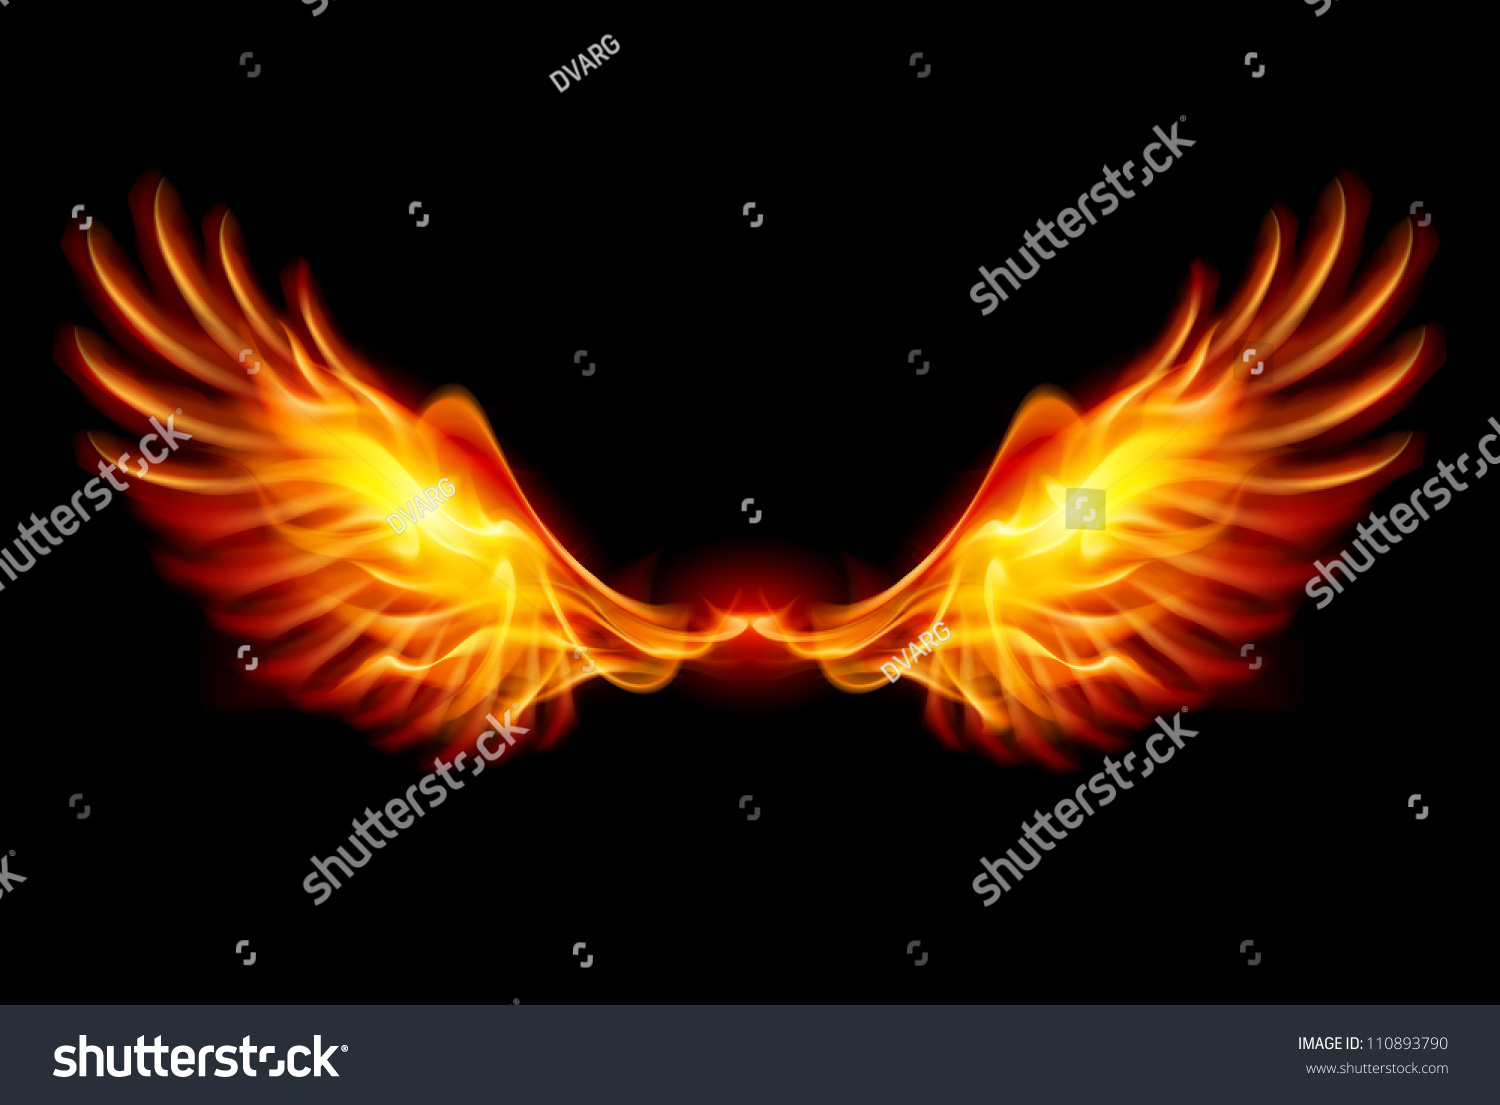 wings in flame and fire illustration on black 110893790